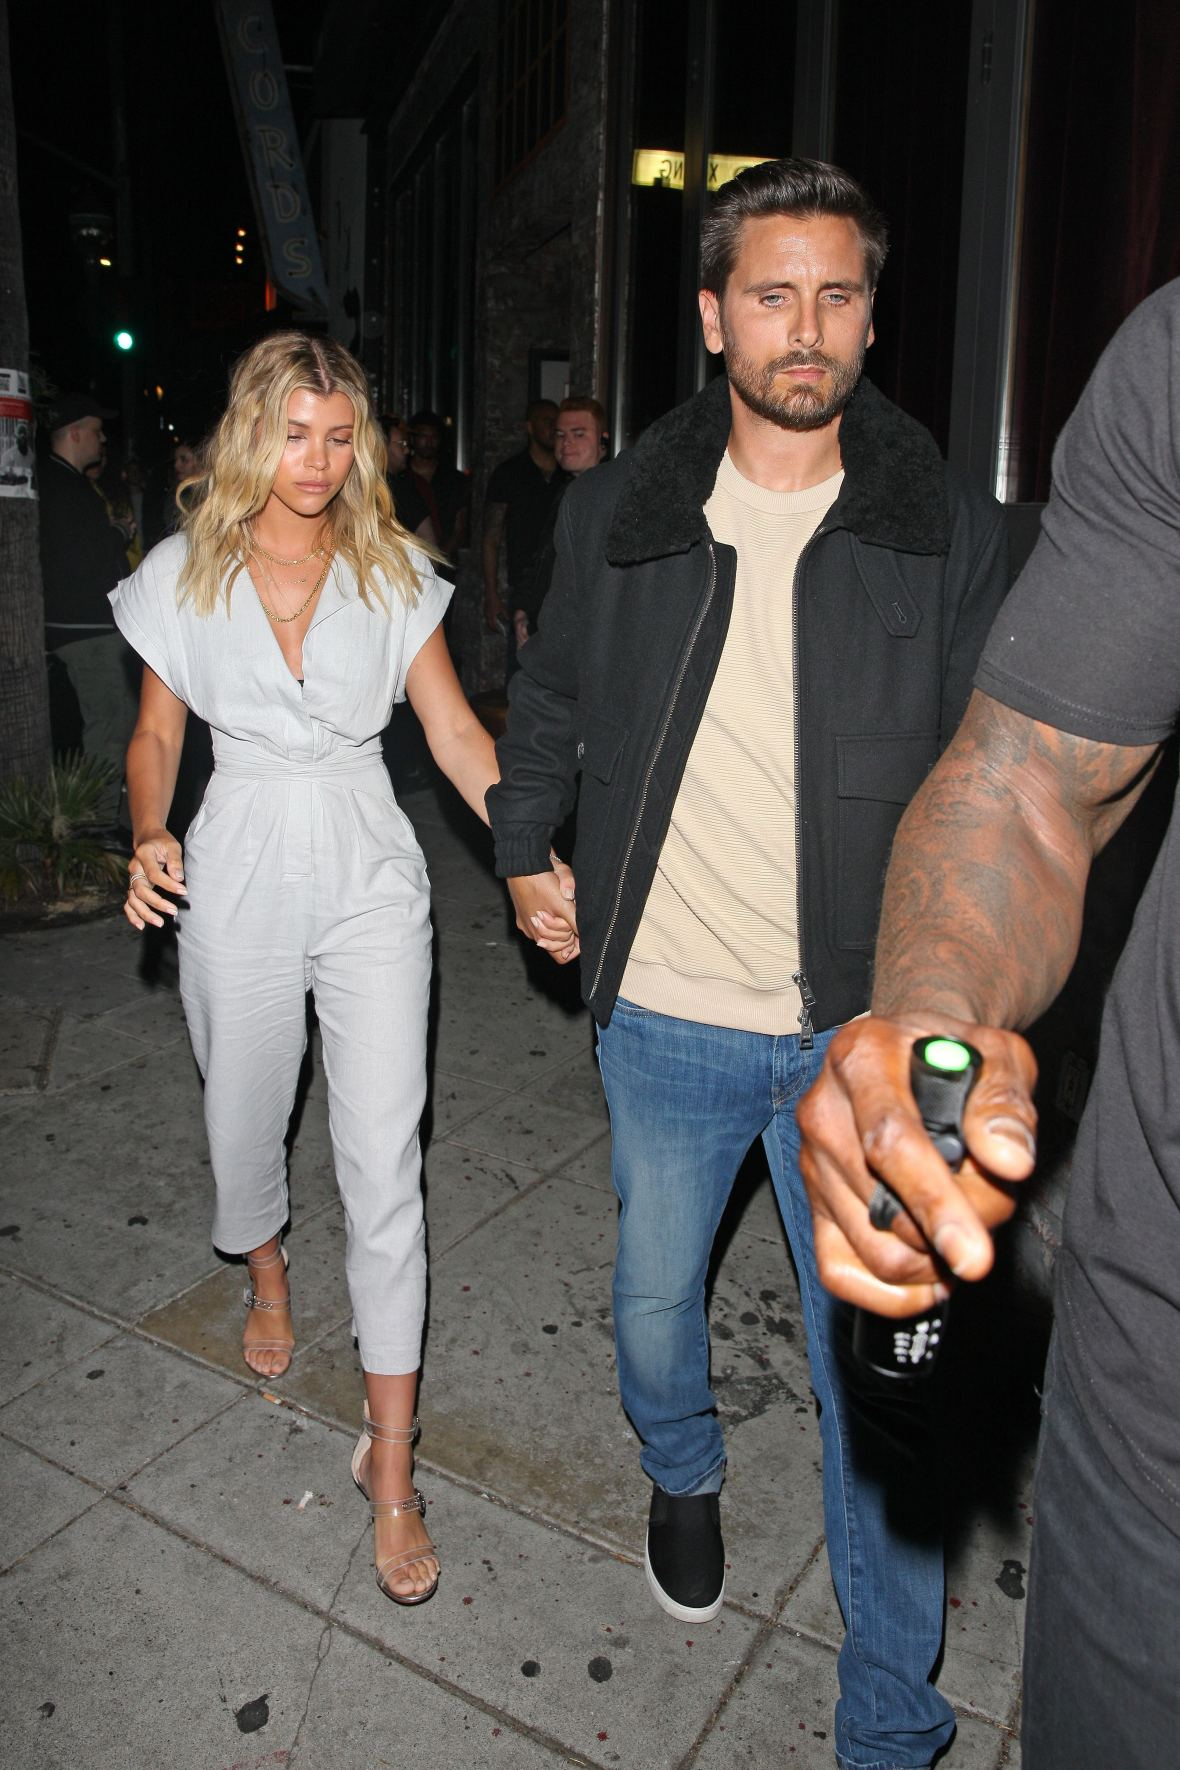 055b178e59d Scott Disick and Sofia Richie Pack on the PDA in L.A. — See Pics!